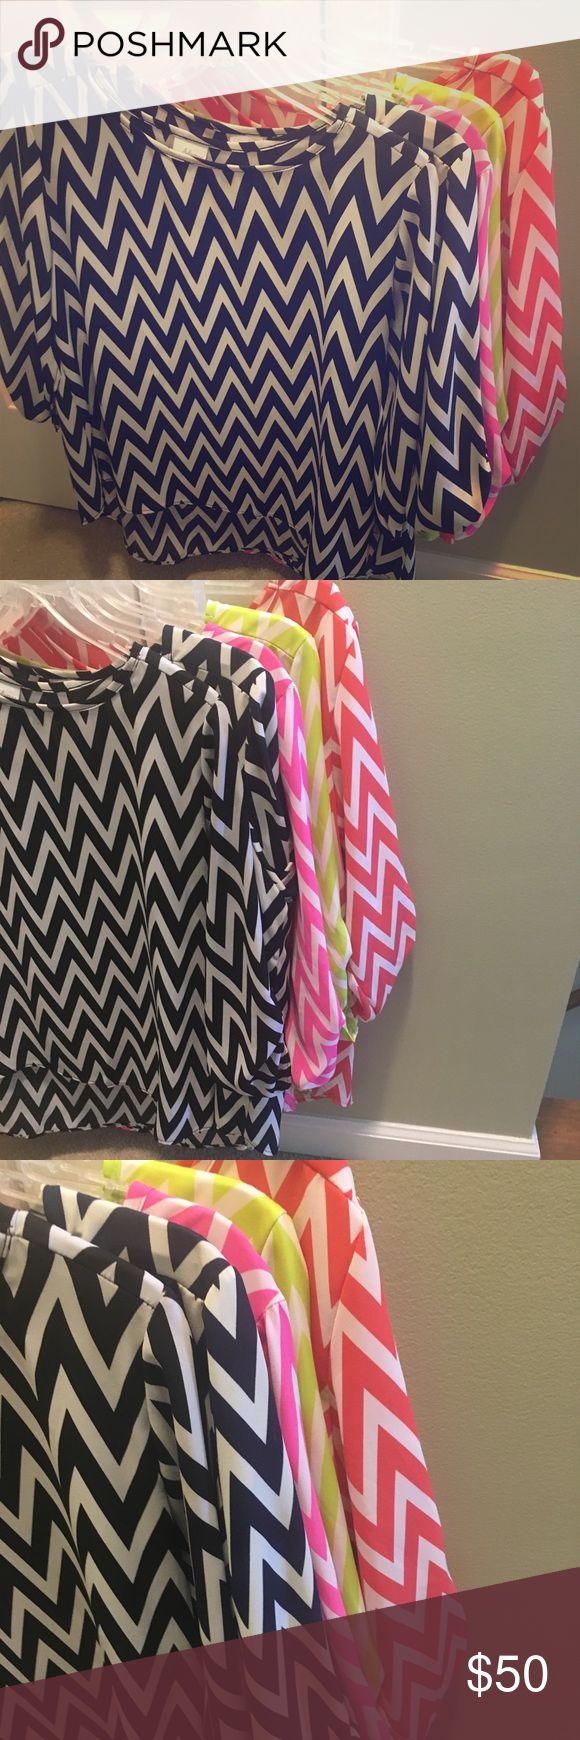 BUNDLE DEAL-Adrienne Boutique Chevron Tops $50 for 5!! These are Boutique tops that were gently worn and perfect for spring/summer. Light weight material and you can have black, navy, pink, lime green, and corral. Smoke free home. Adrienne Tops Blouses